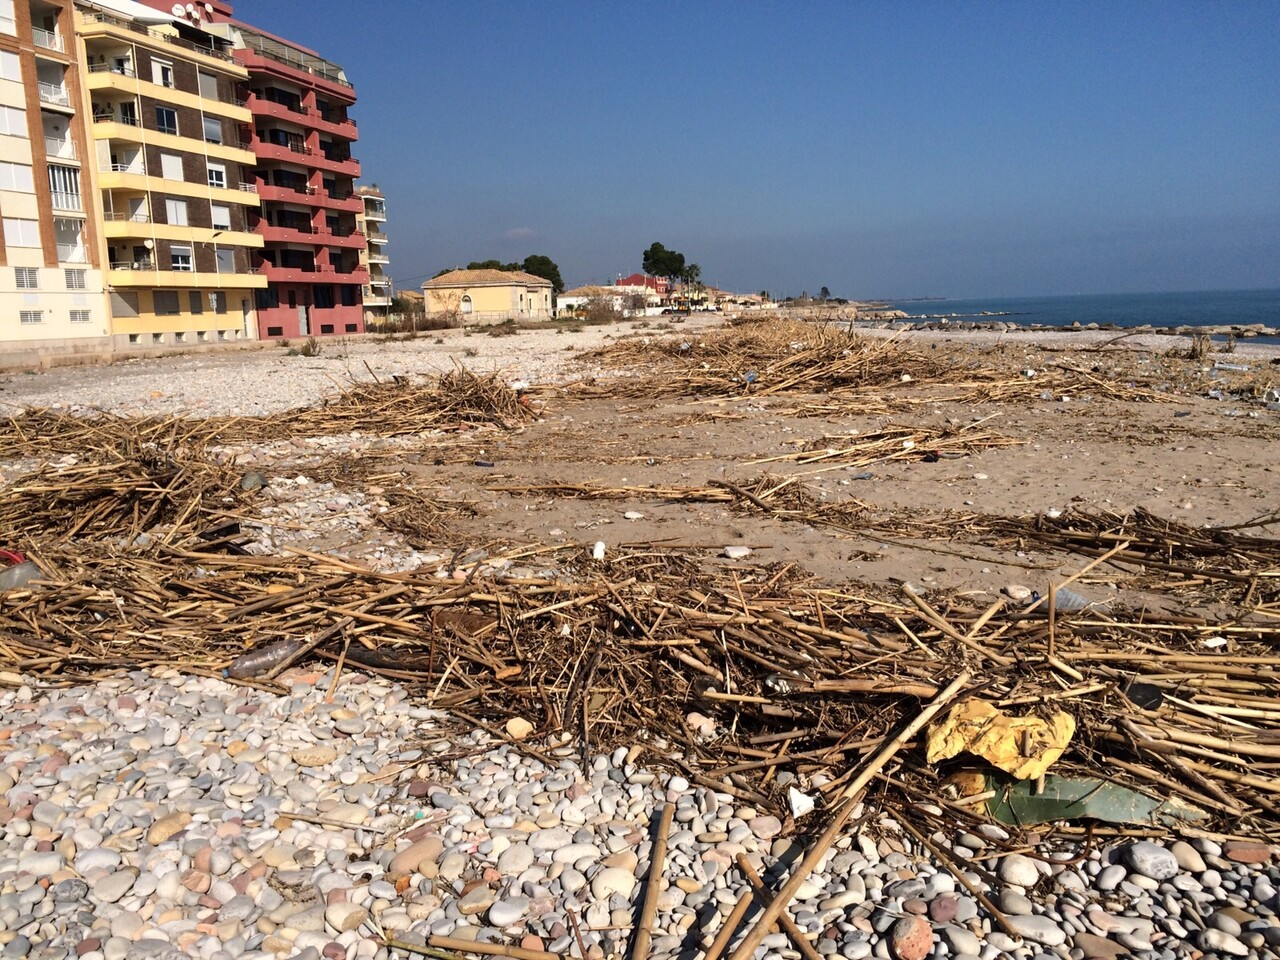 Estado playa de Burriana a 10 días del temporal